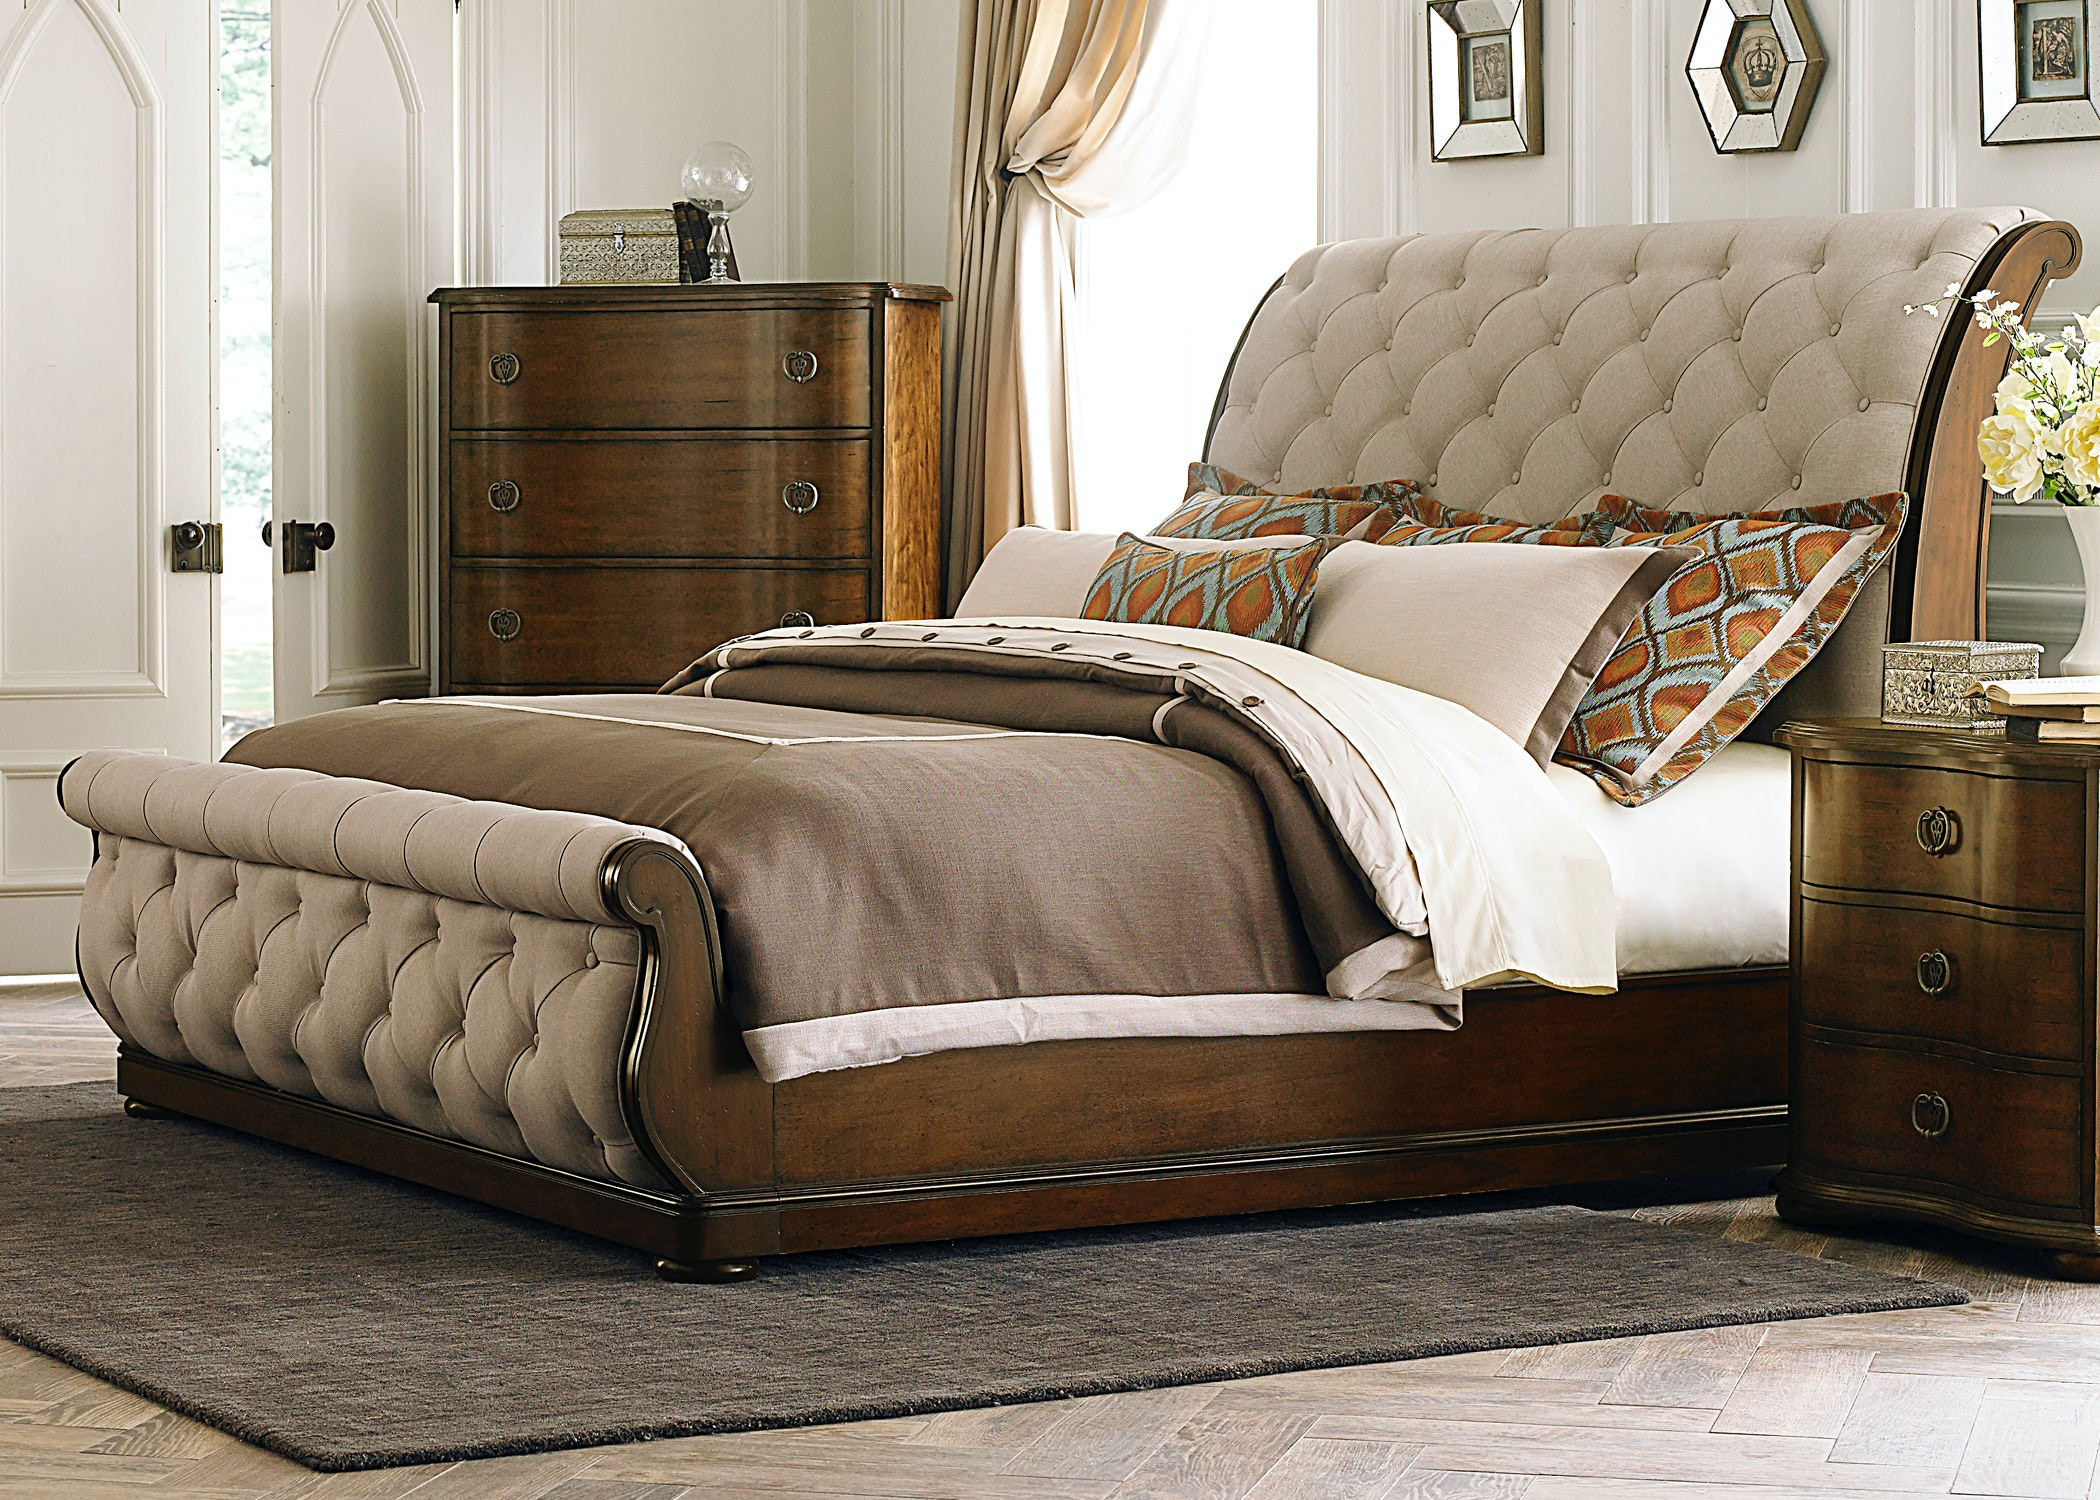 Delightful Liberty Furniture King Sleigh Bed 545 BR KSL